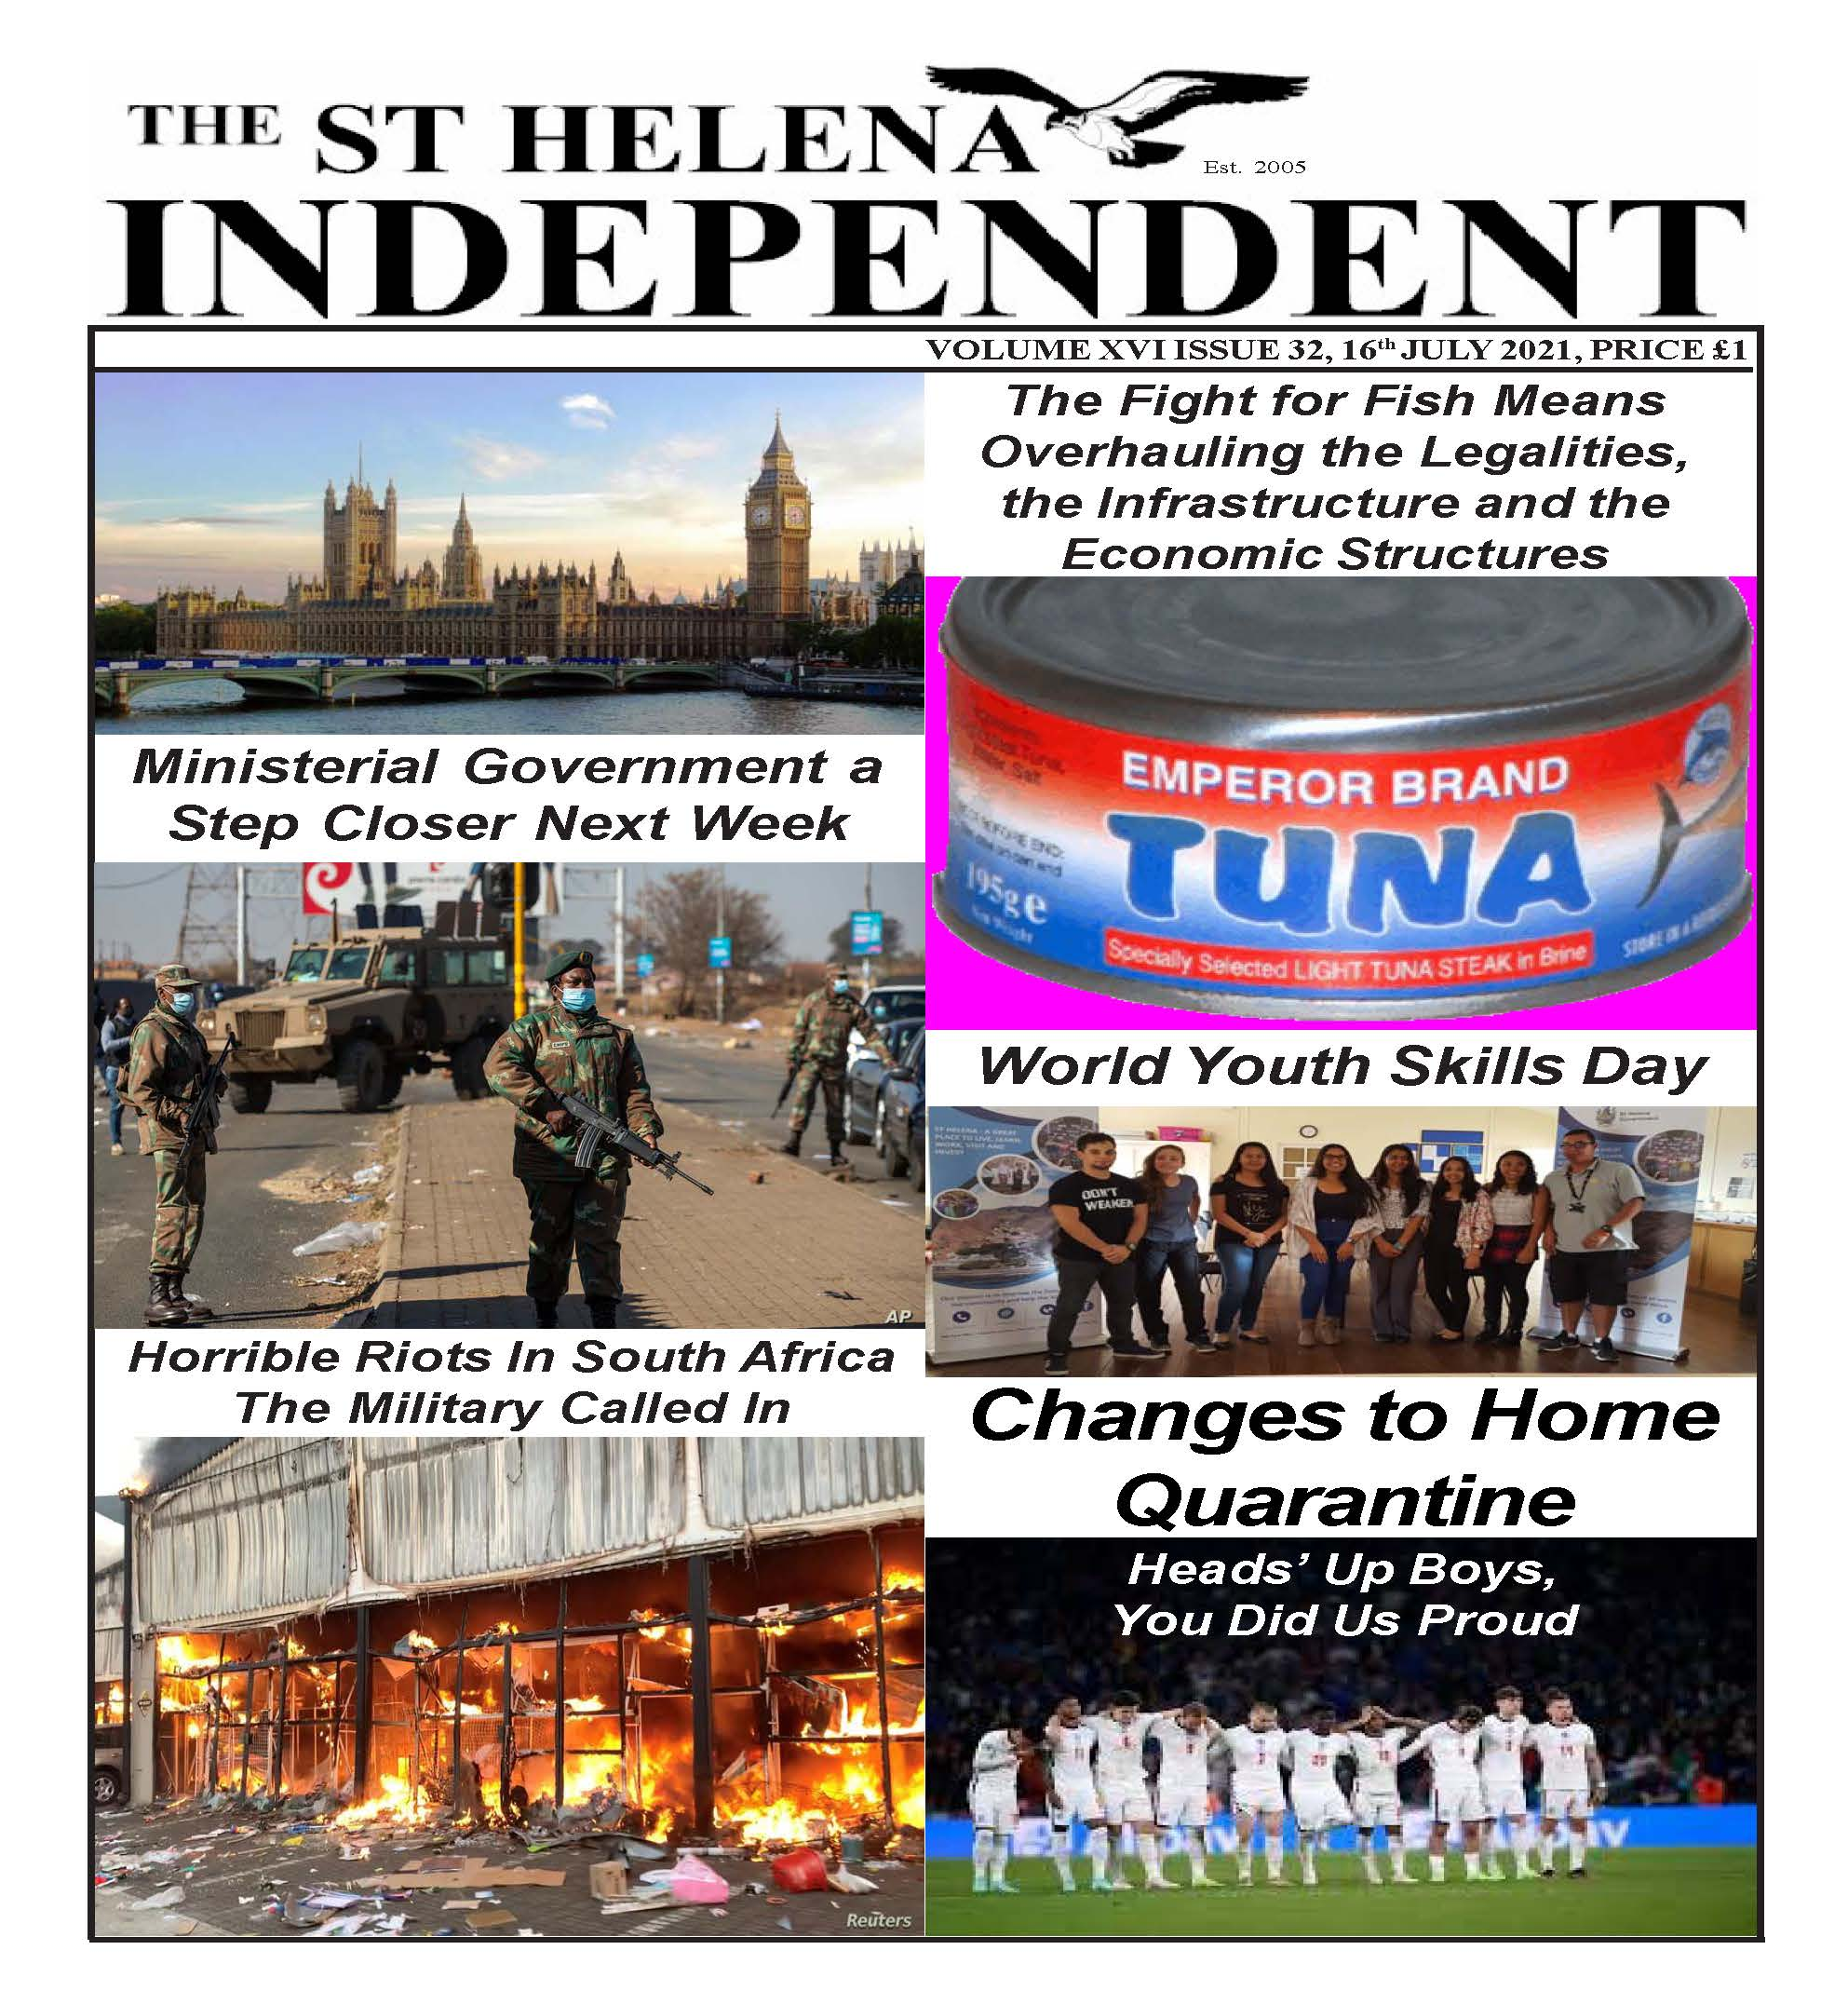 St Helena Independent 20210716 p1